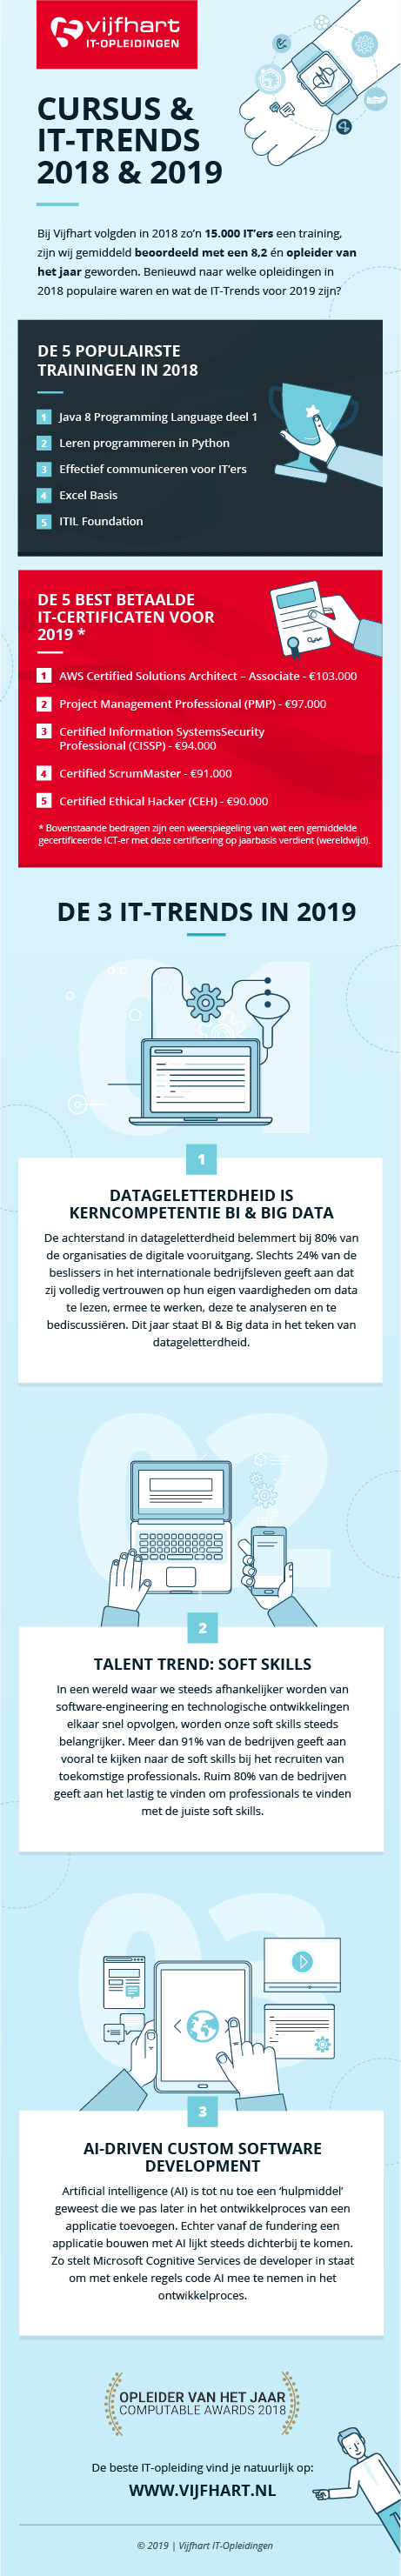 Infographic Populaire IT Trainingen